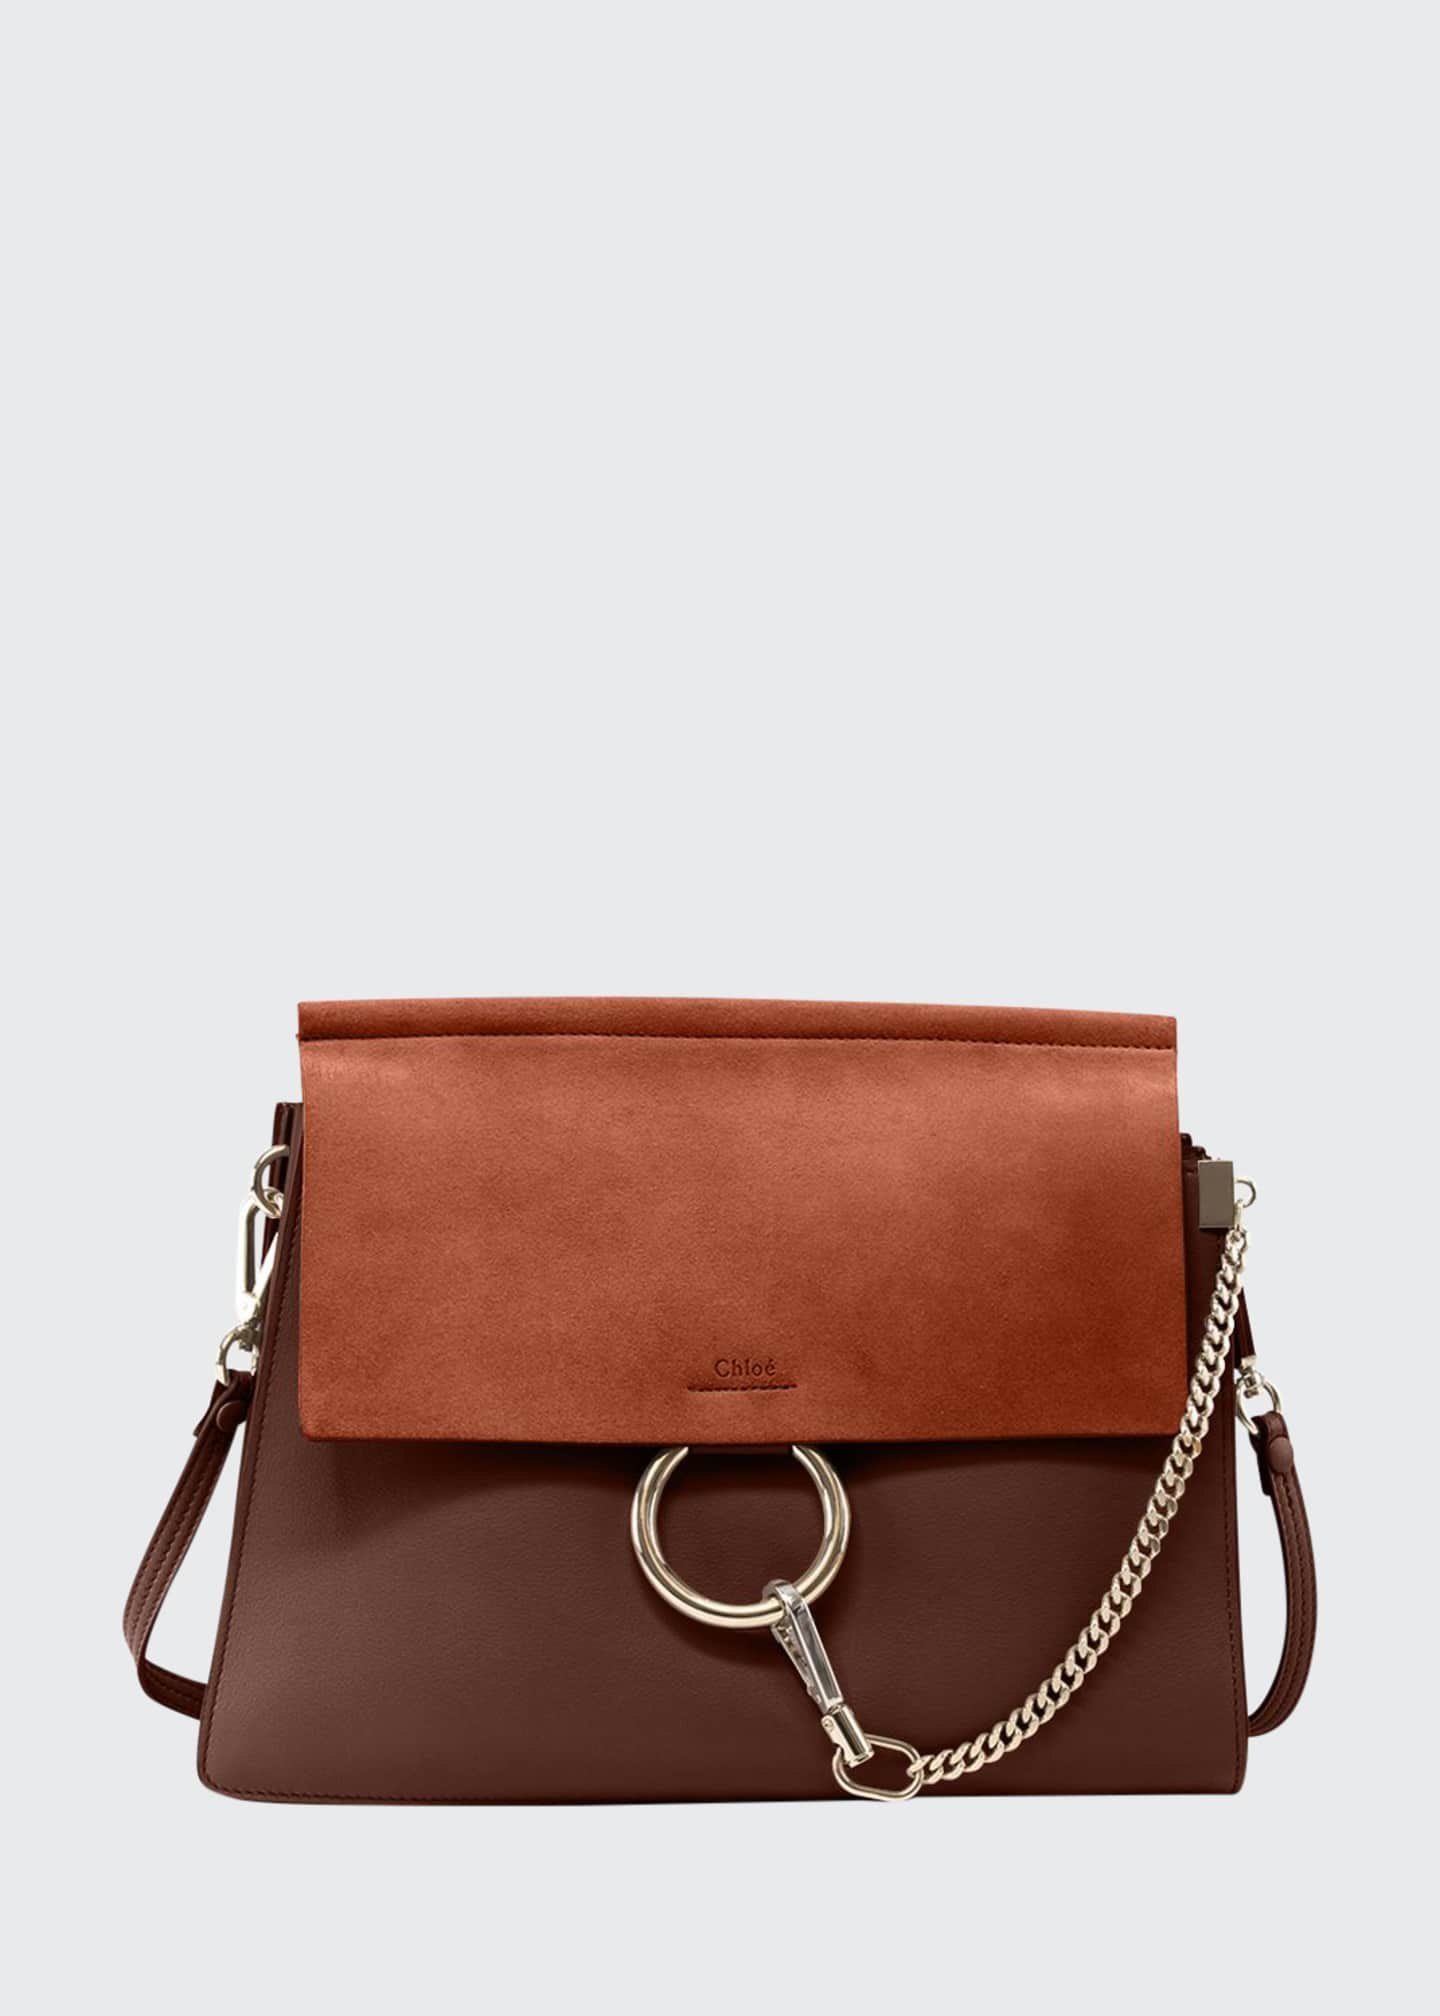 Chloe Faye Medium Flap Shoulder Bag, Tobacco